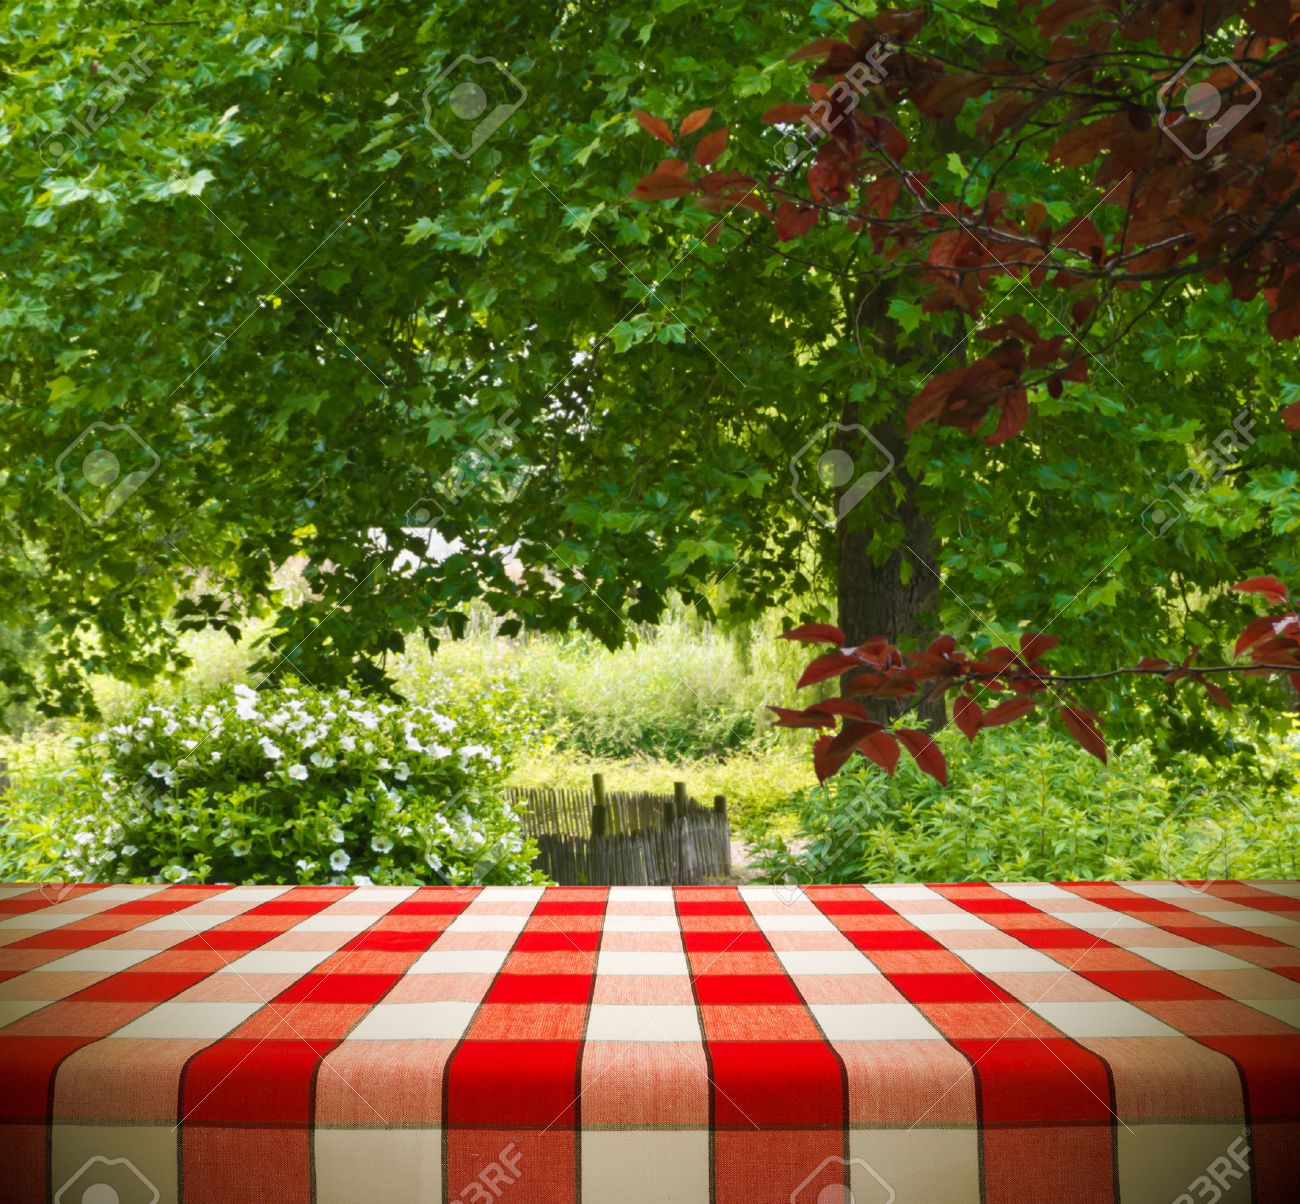 Picnic table background - Picnic Tables Picnic Table Template In Garden Stock Photo